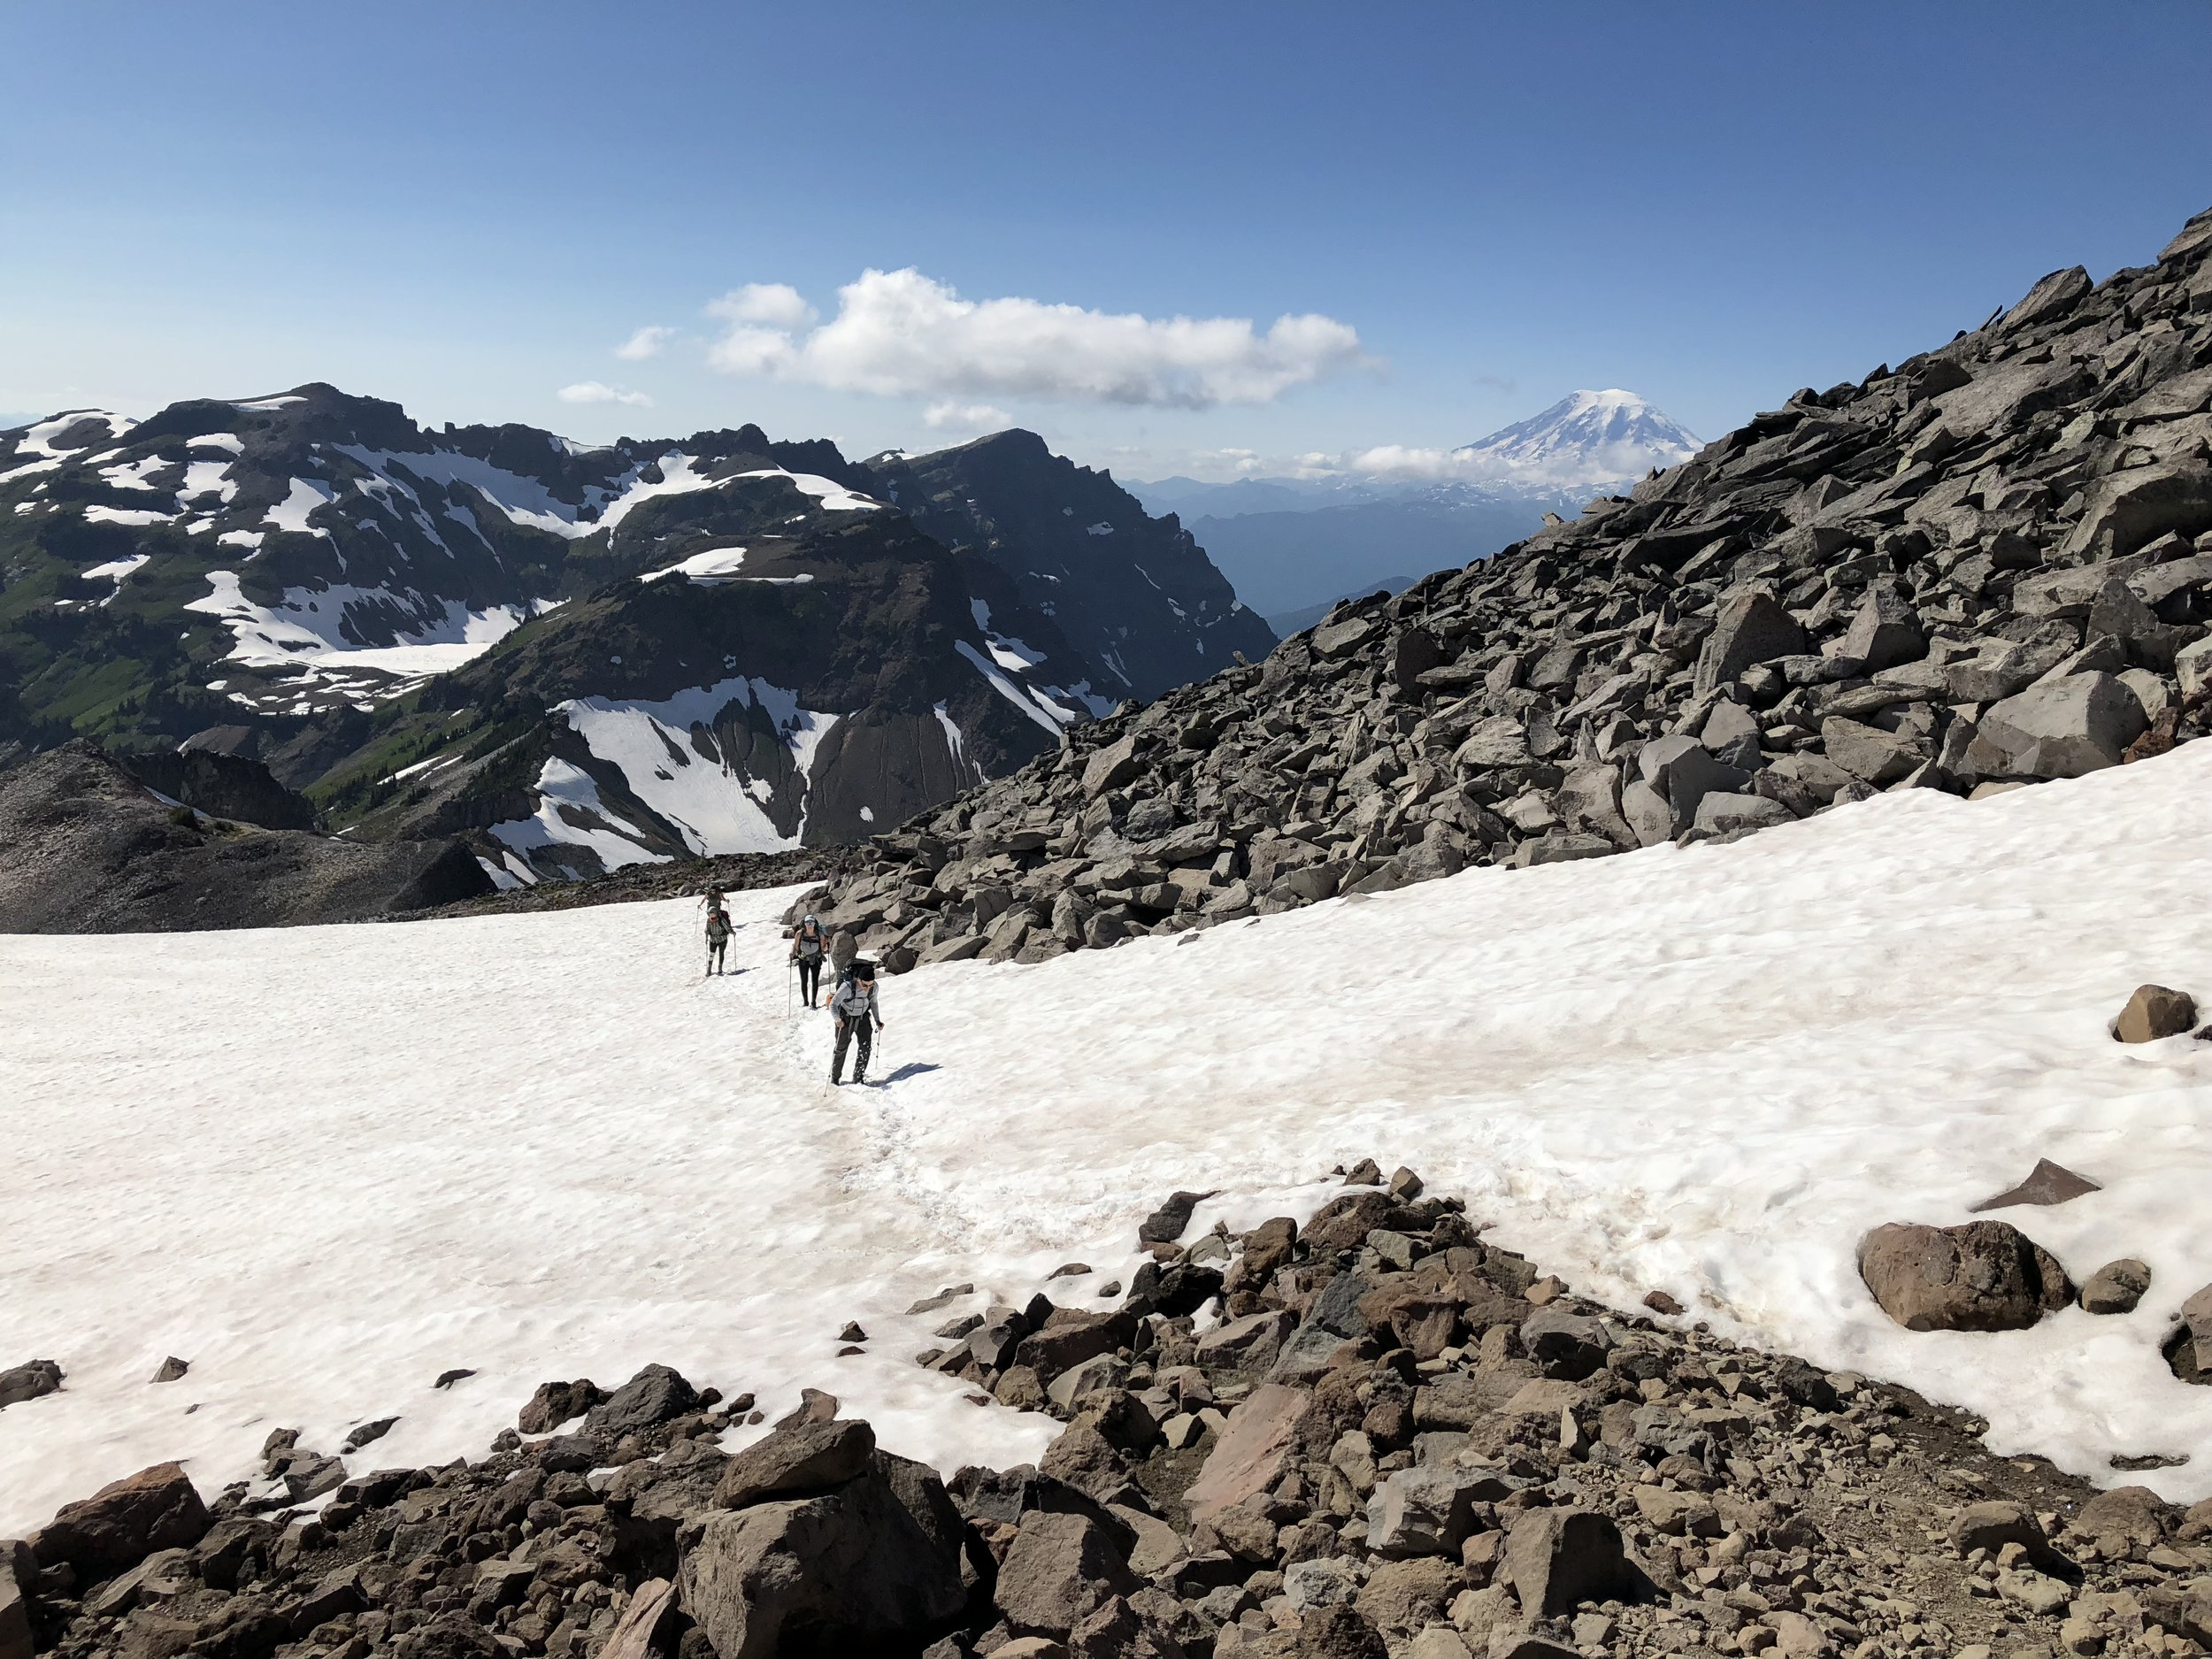 Nearing high camp with Mount Rainier in the distance.